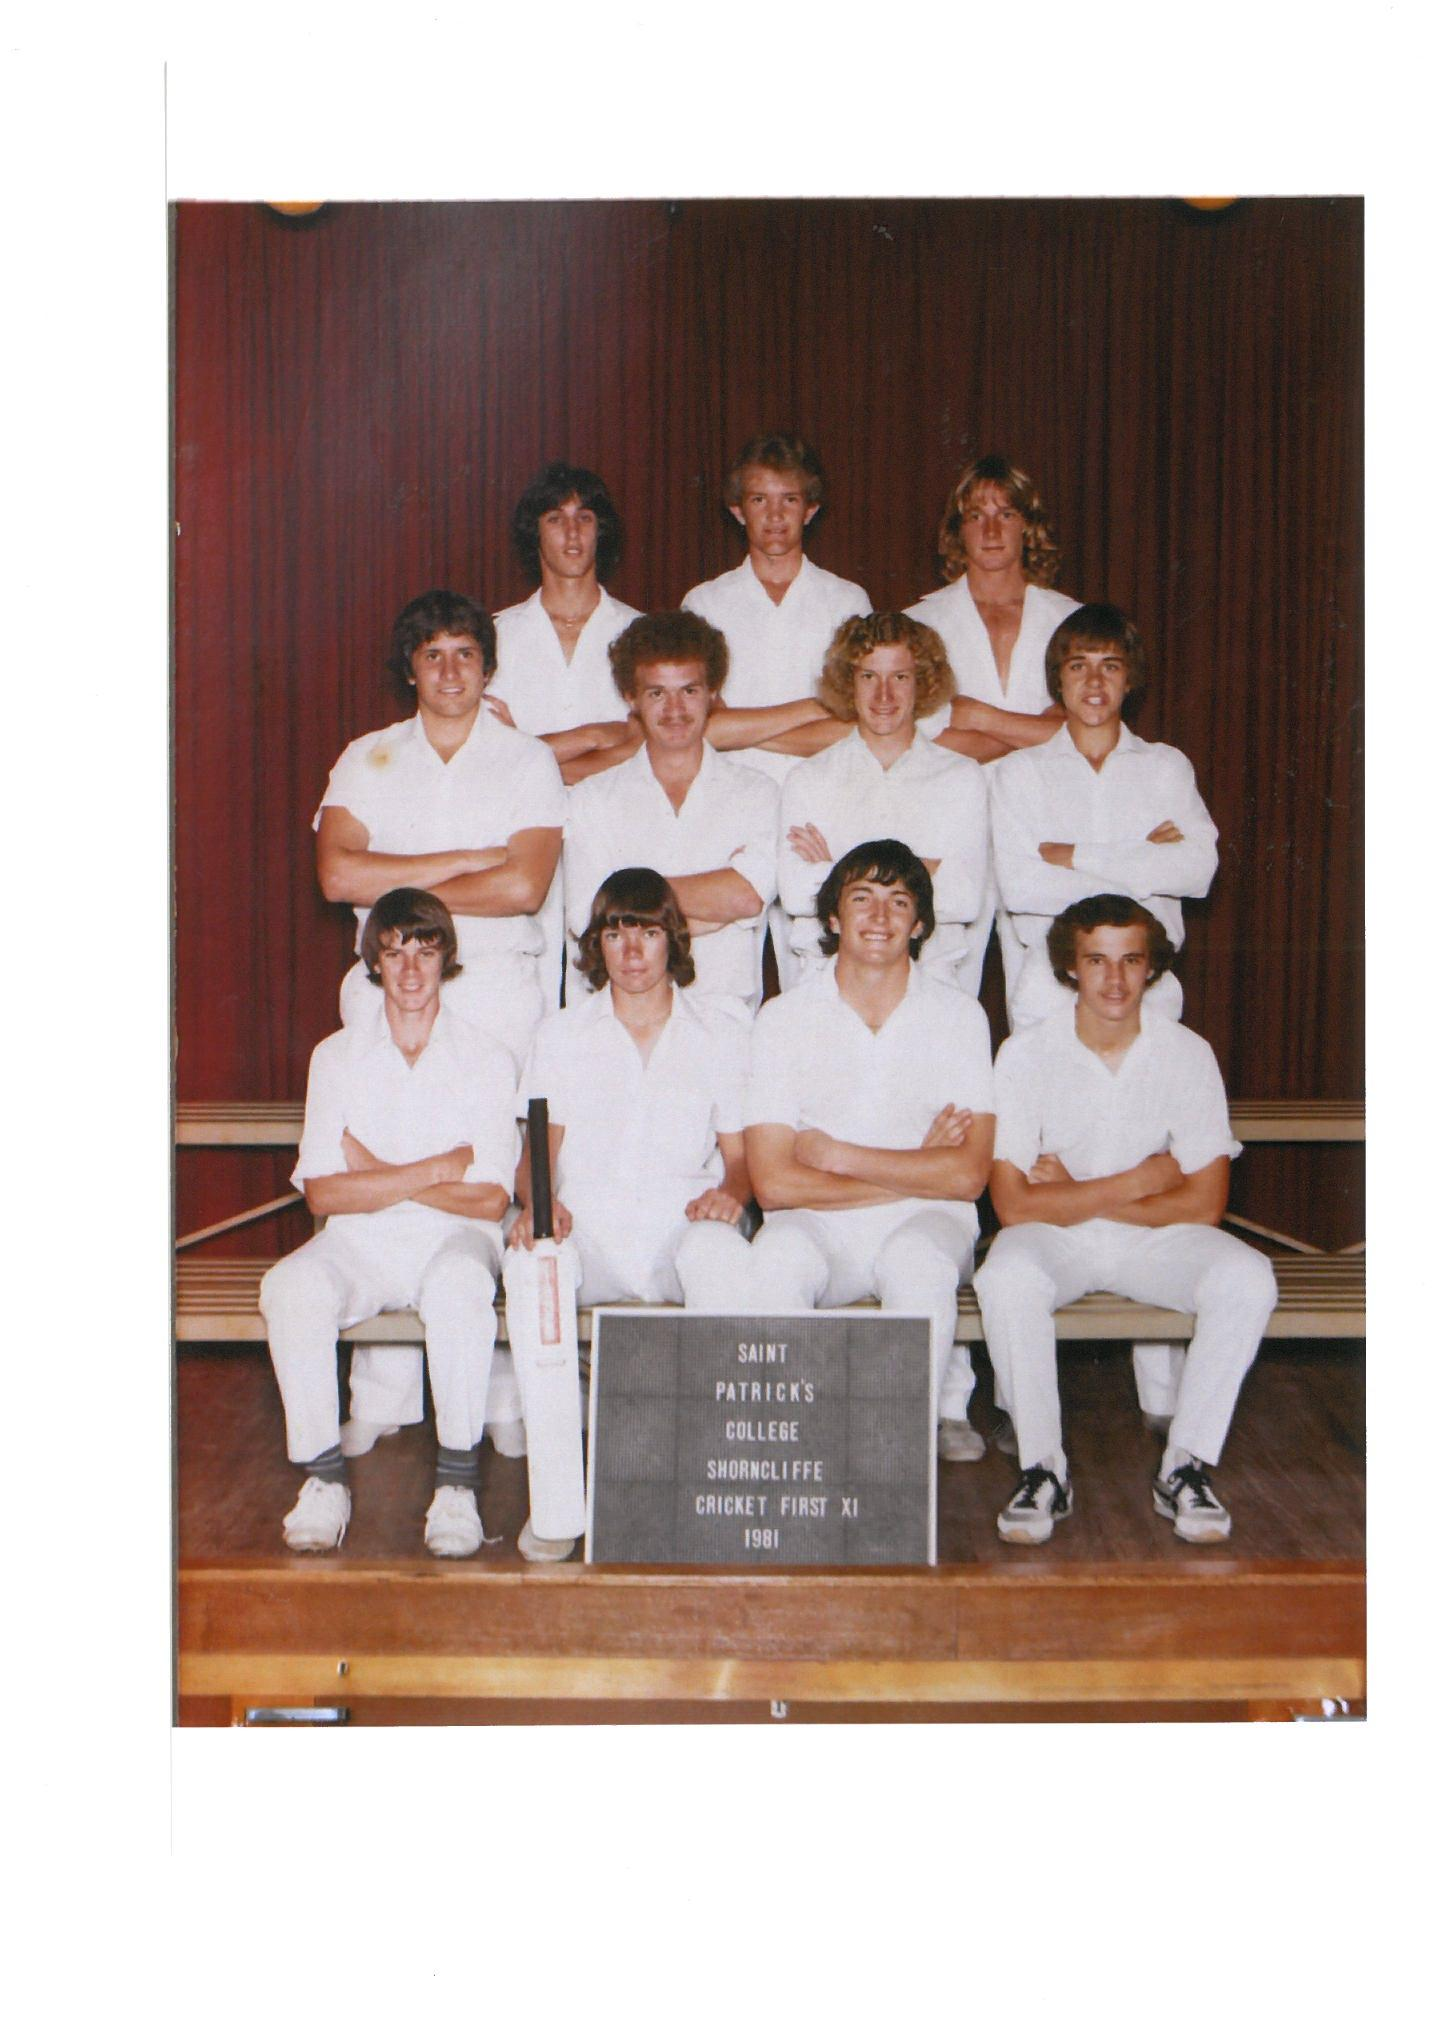 1981-Cricket-First-XI-003.jpg?mtime=2017